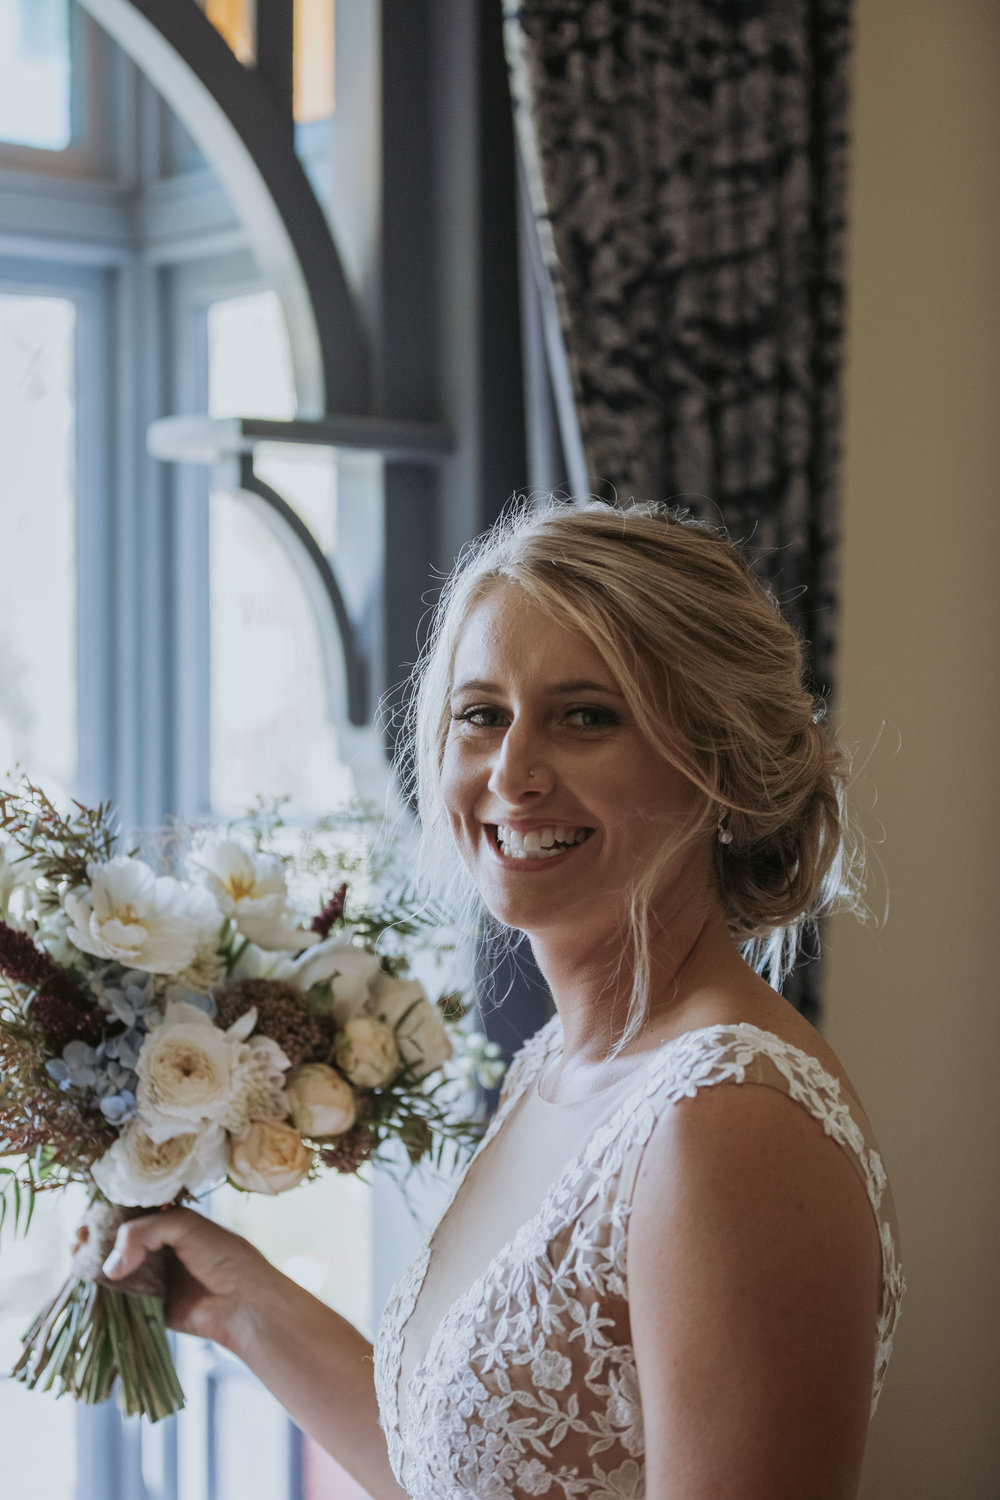 Smiling bride photo. Natural, relaxed wedding photography Kiama